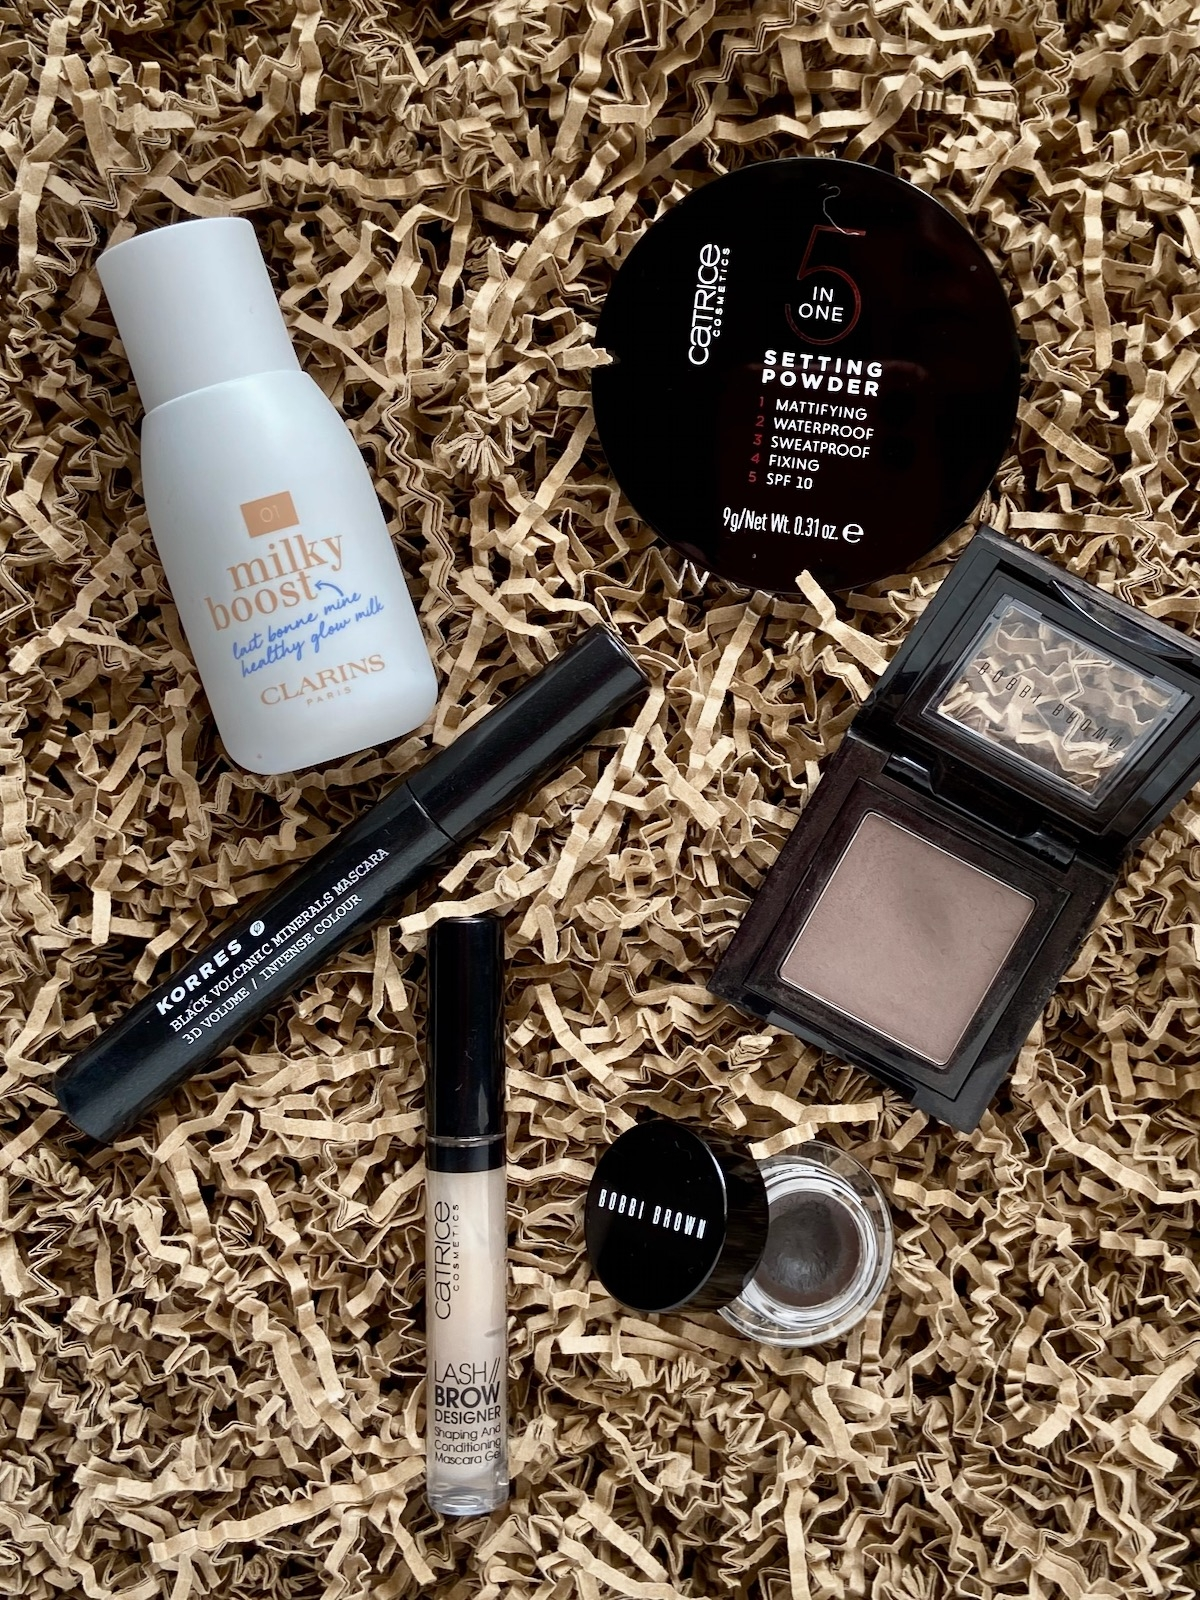 Clarins Milky Boost Catrice Setting powder 5 in One Korres Professional Volume Mascara Bobbi Brown Gel Eyeliner Espresso Bobbi Brown Eyeshadow Slate Ctarice Lash Brow Designer